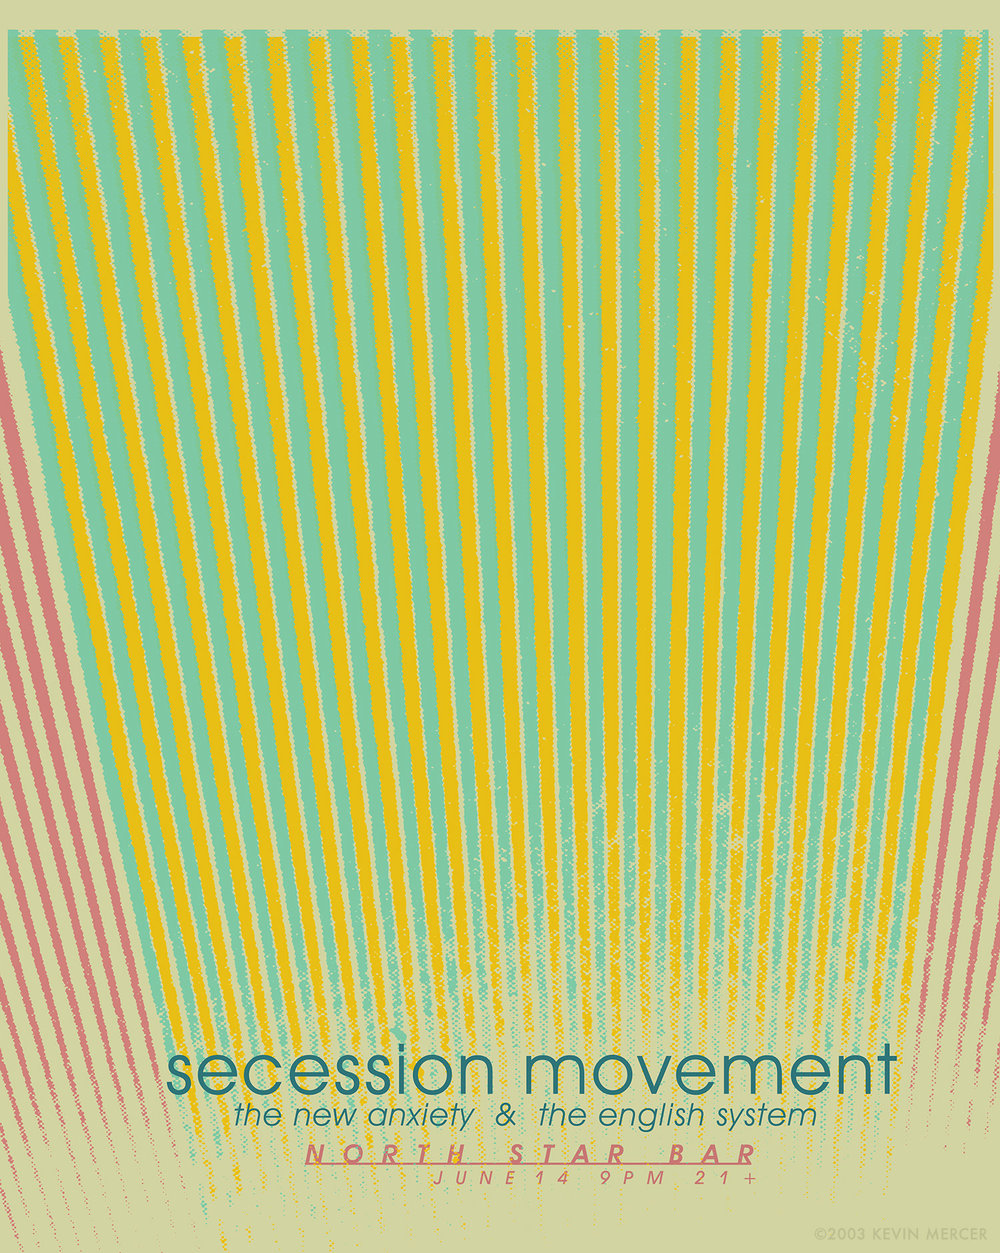 SecessionMovement2003-1500.jpg